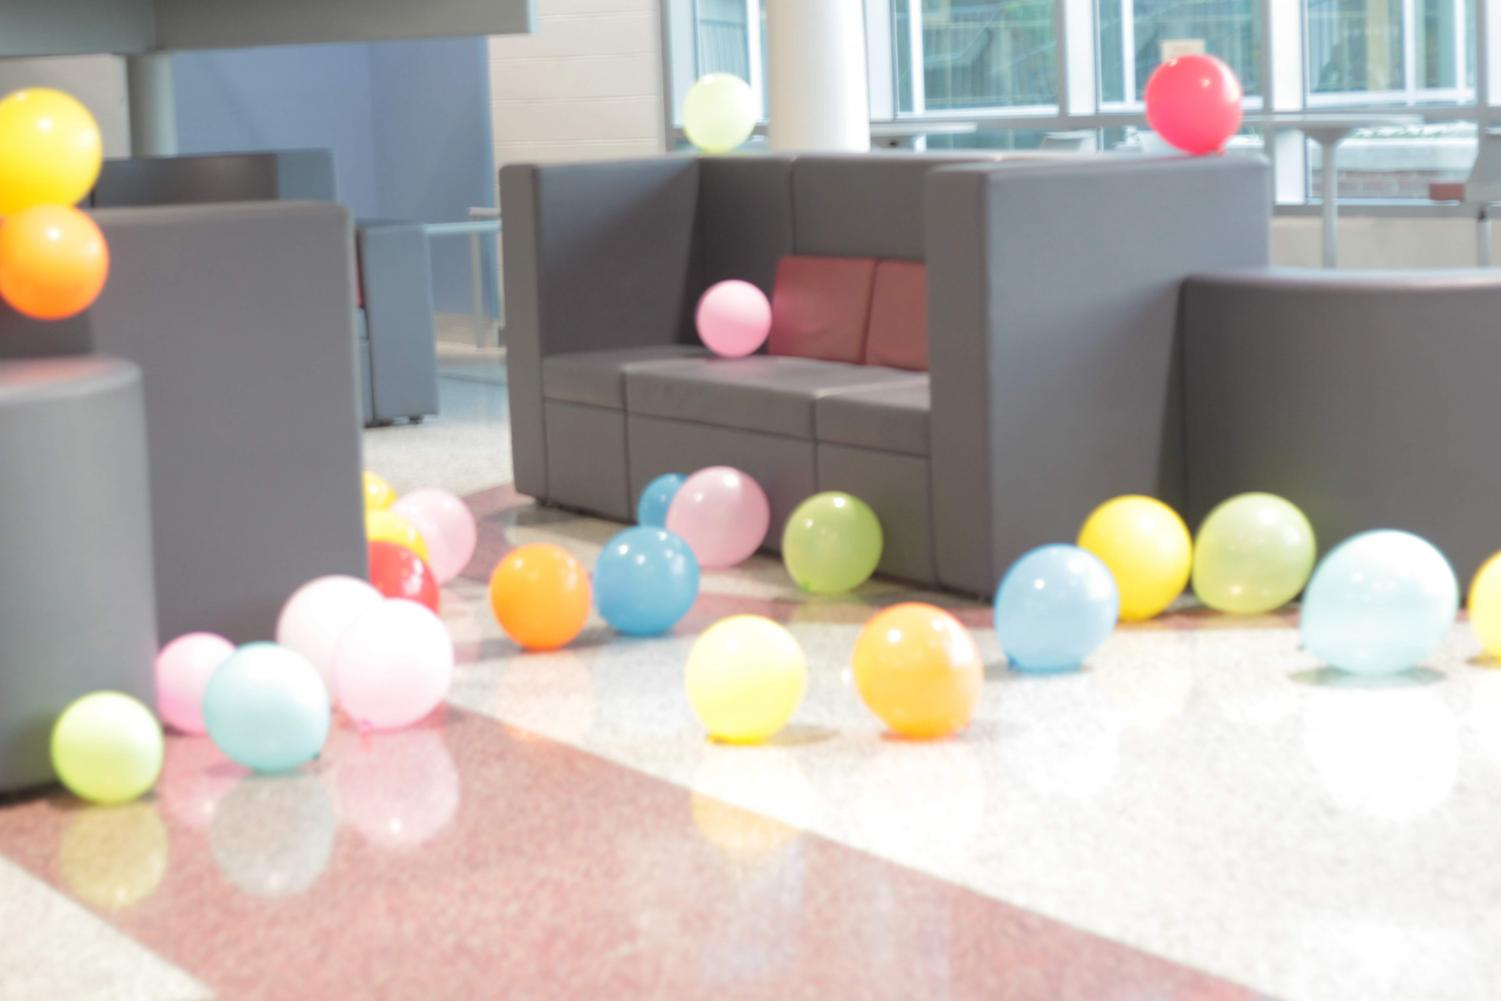 Nobel+Commons+was+filled+with+balloons+for+the+class%27s+enjoyment.